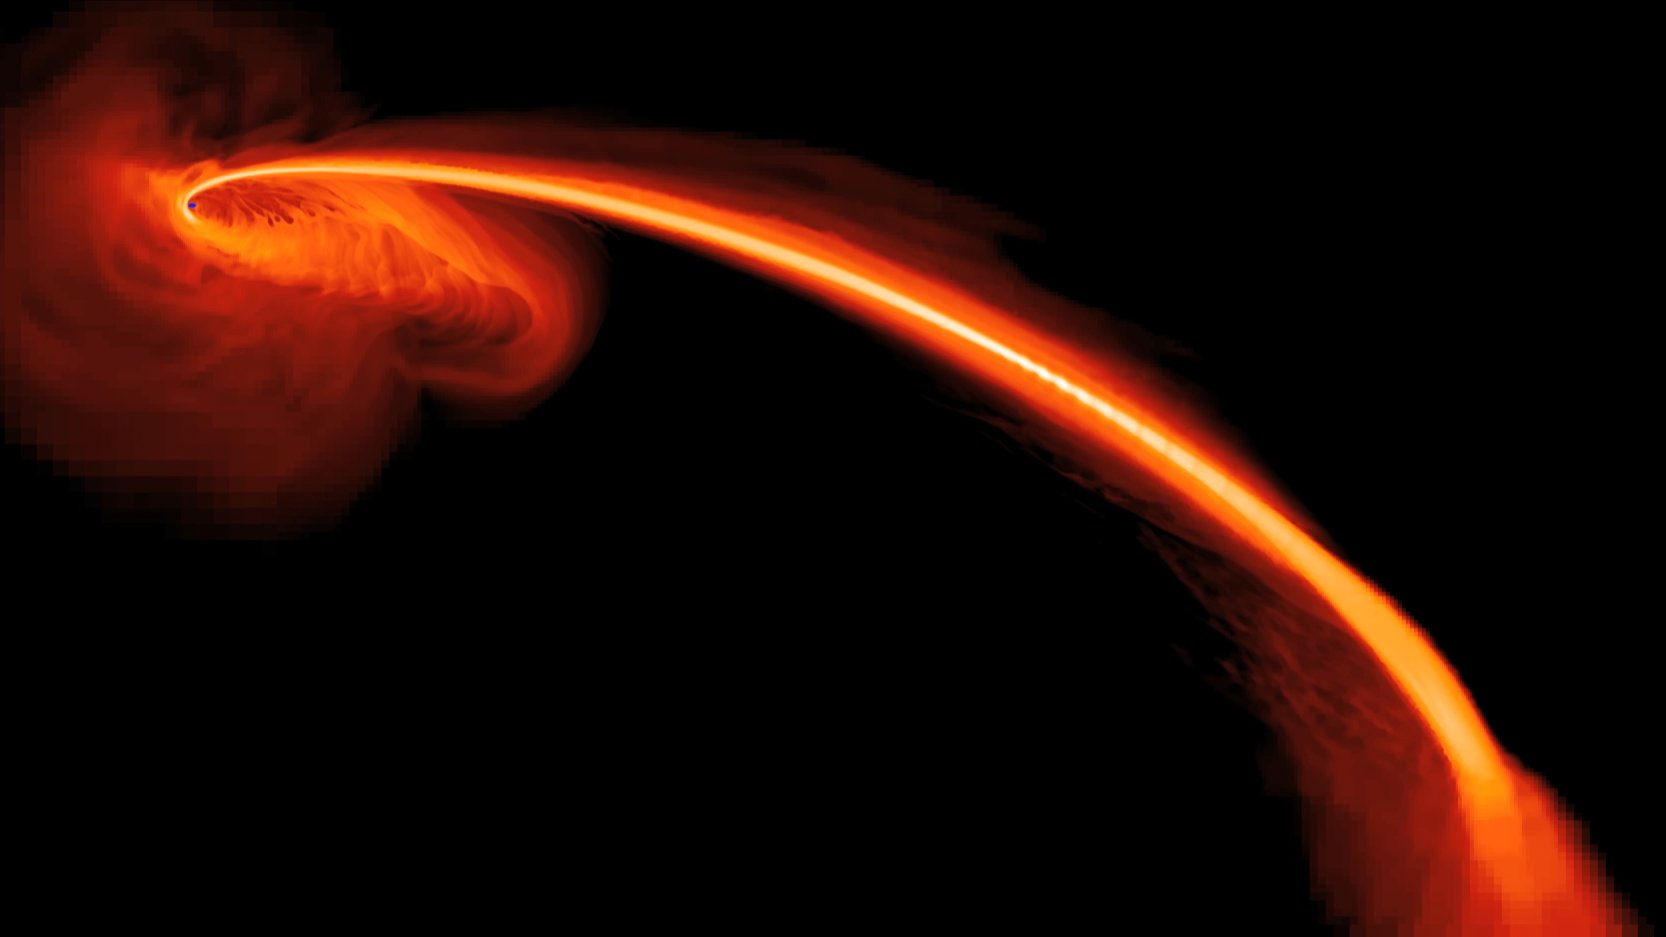 This computer-simulated image shows gas from a star that is ripped apart by tidal forces as it falls into a black hole. Some of the gas also is being ejected at high speeds into space. Image credit: Image Credit:    NASA, S. Gezari (The Johns Hopkins University), and J. Guillochon (University of California, Santa Cruz)